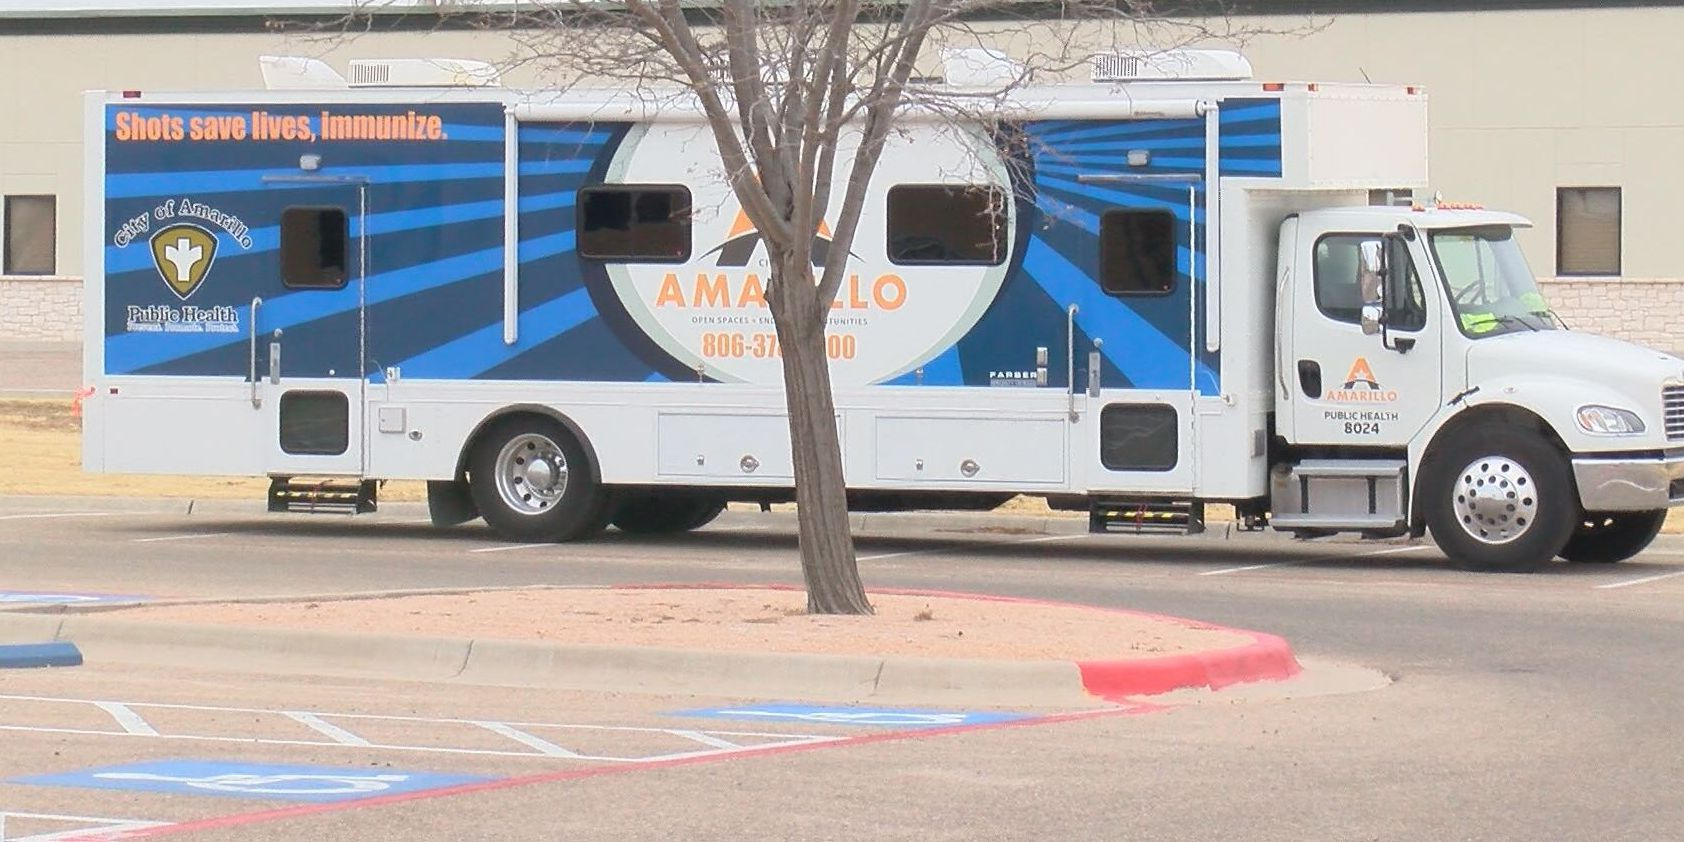 City of Amarillo to host mobile health clinic in Canyon